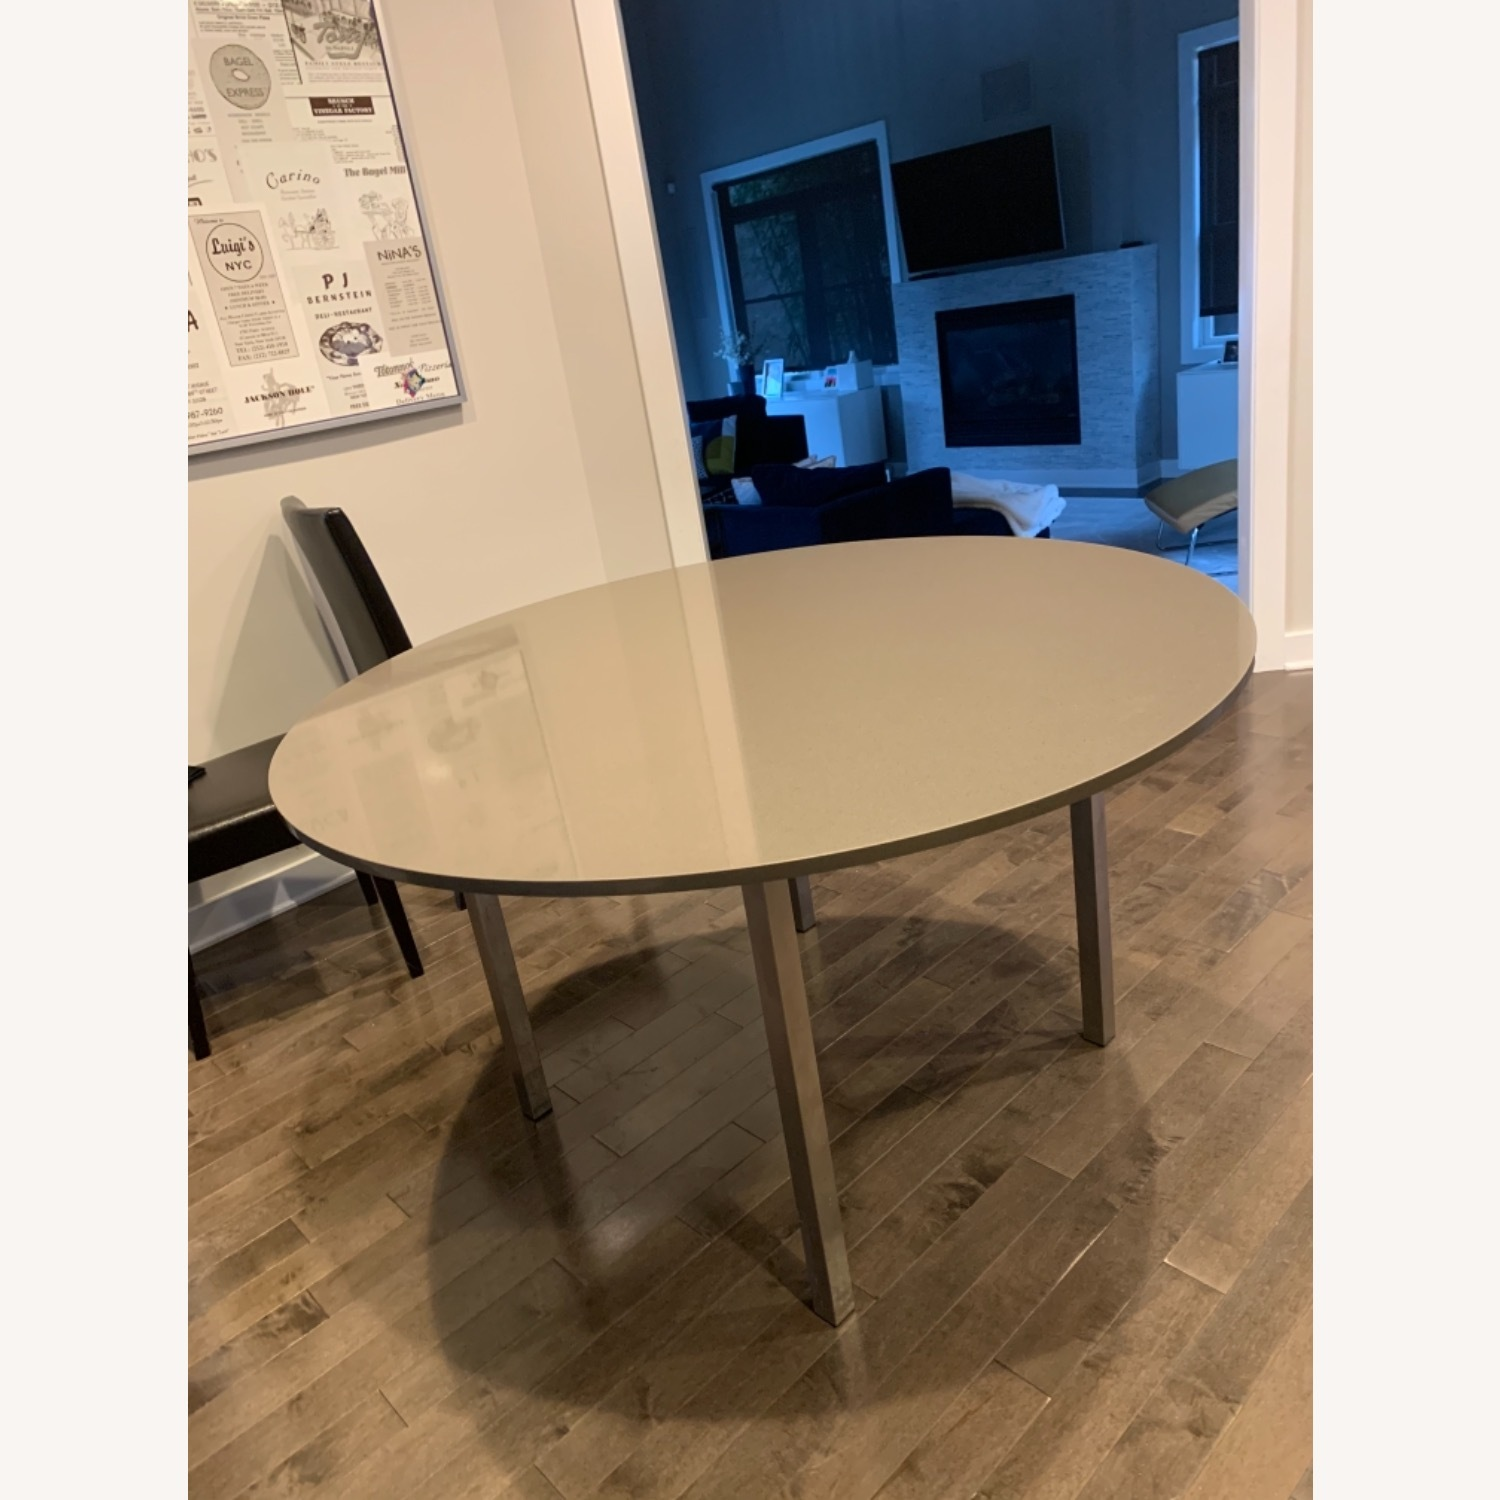 Room & Board Portica Dining or Kitchen Table - image-1